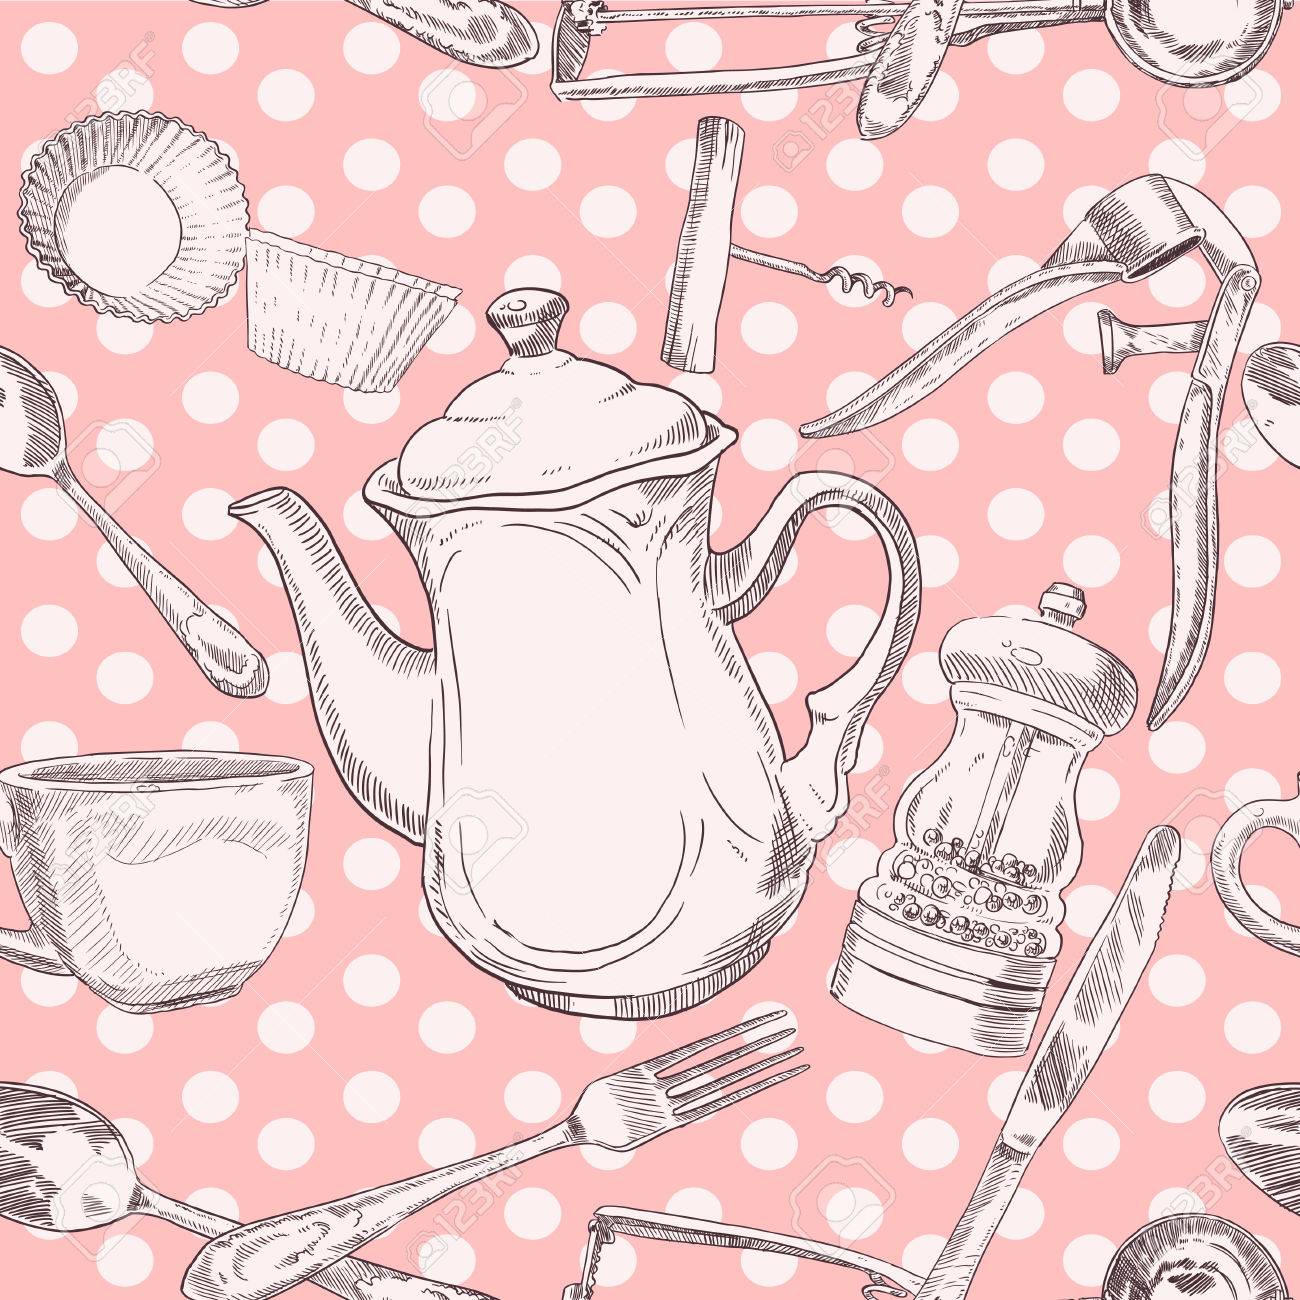 Seamless pattern of kitchen utensils vintage in light colors Stock Vector - 23149833